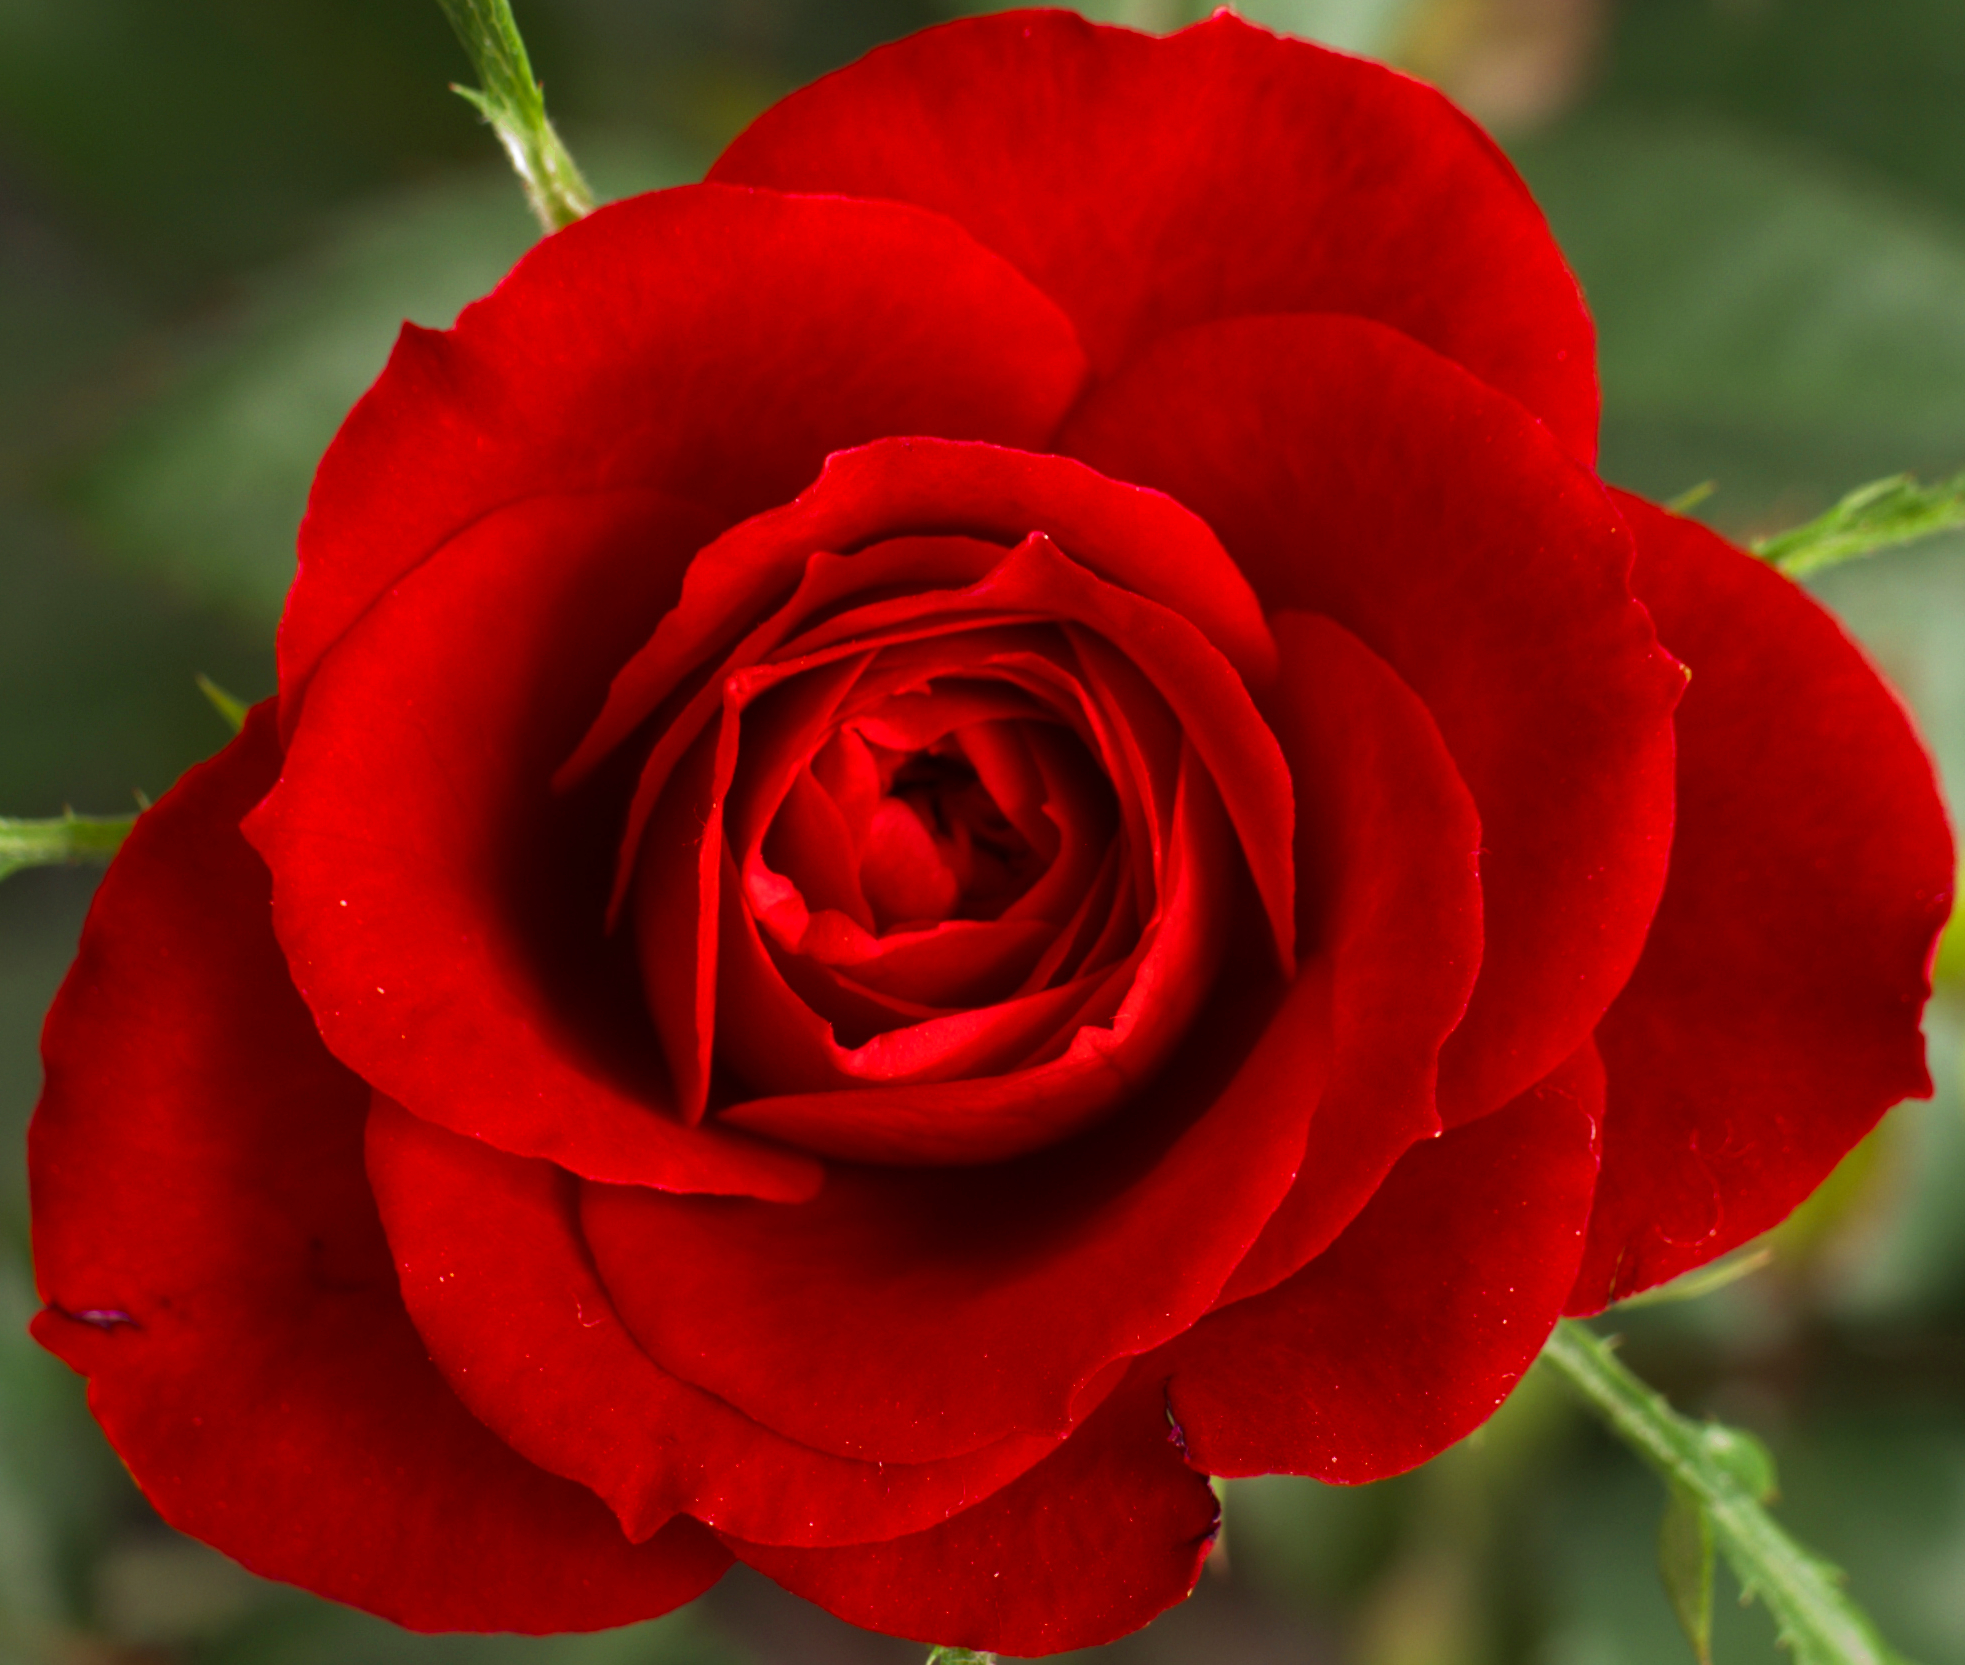 [Image: Cropped_Small_Red_Rose.JPG]